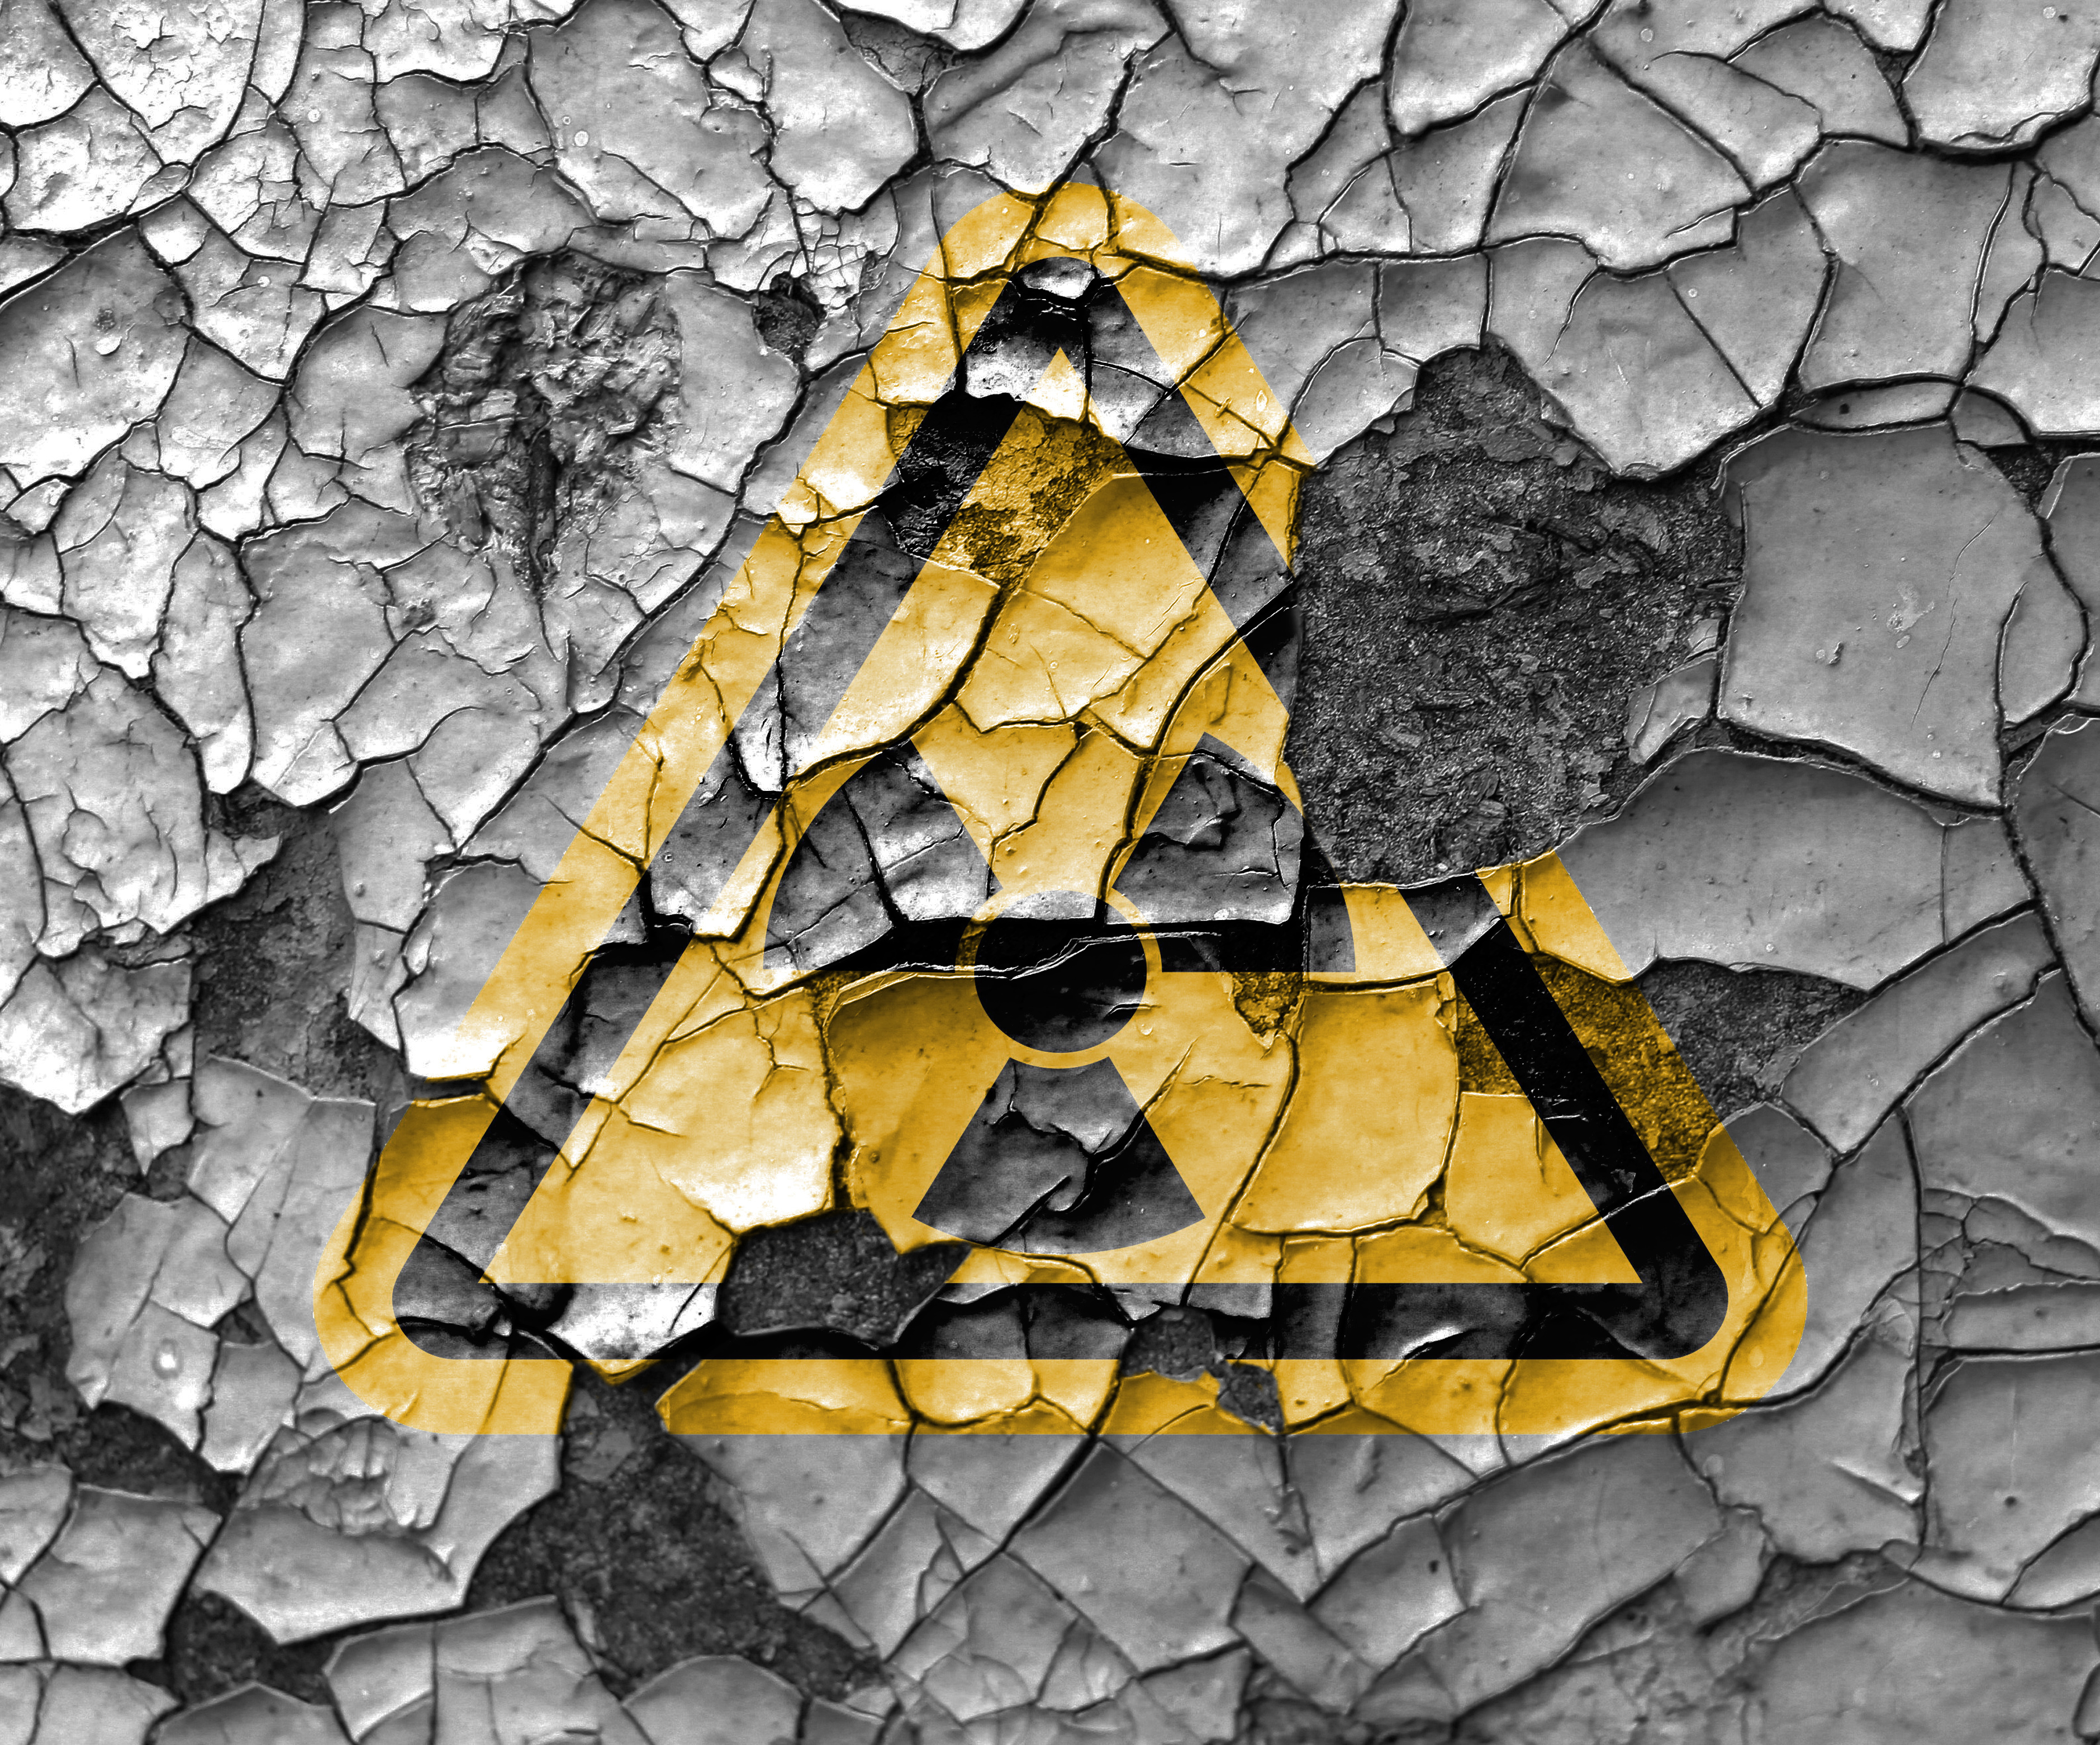 Pictured is a sign conveying radioactivity. SHUTTERSTOCK/Andrei Burylov